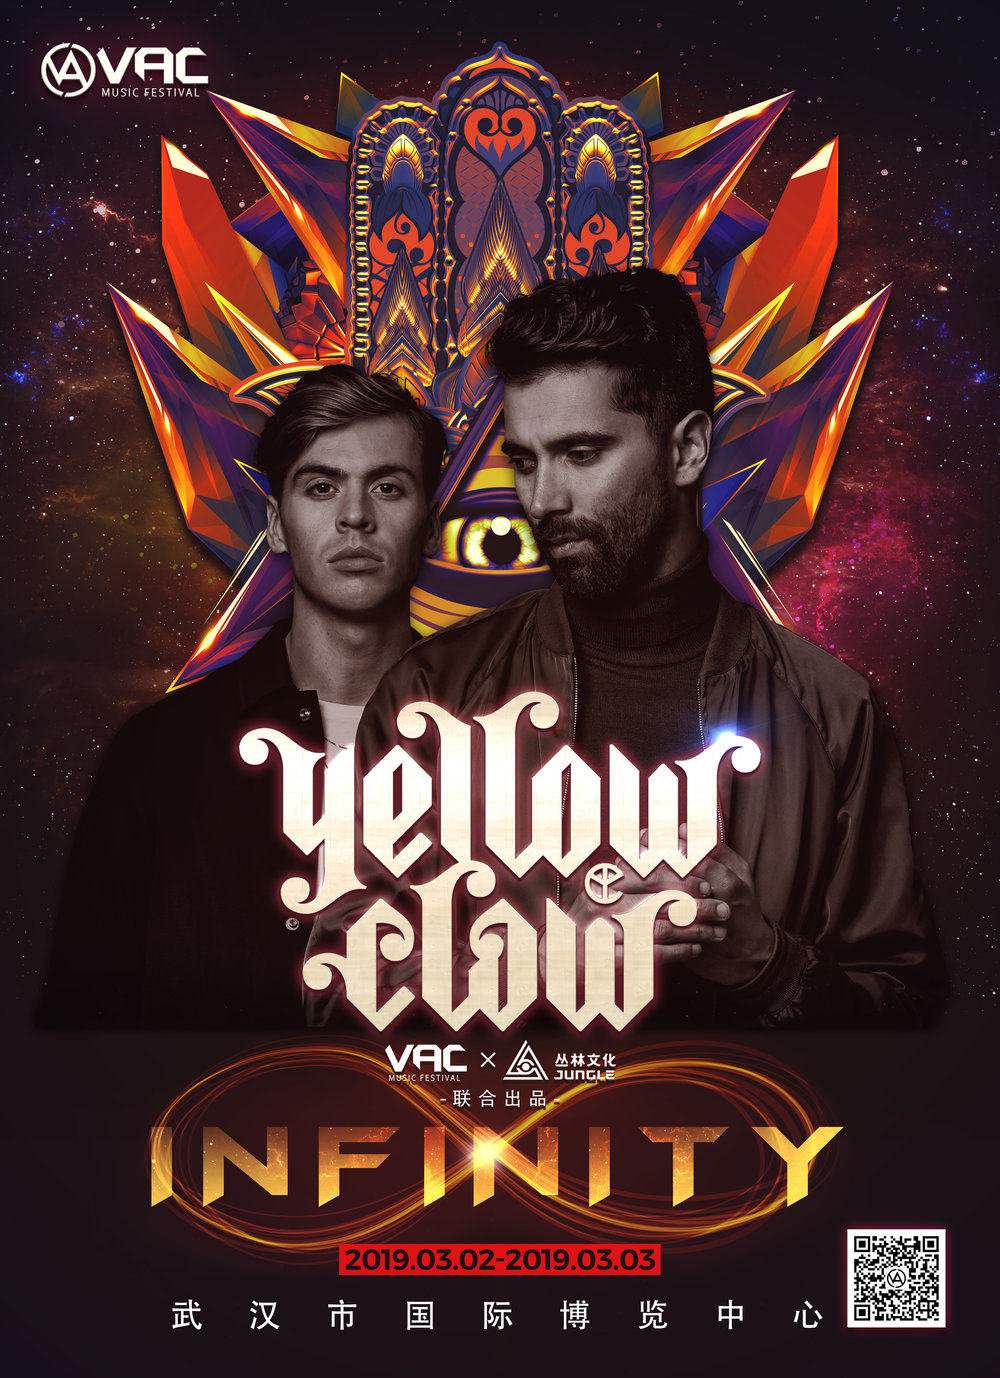 Yellow-Claw.jpg